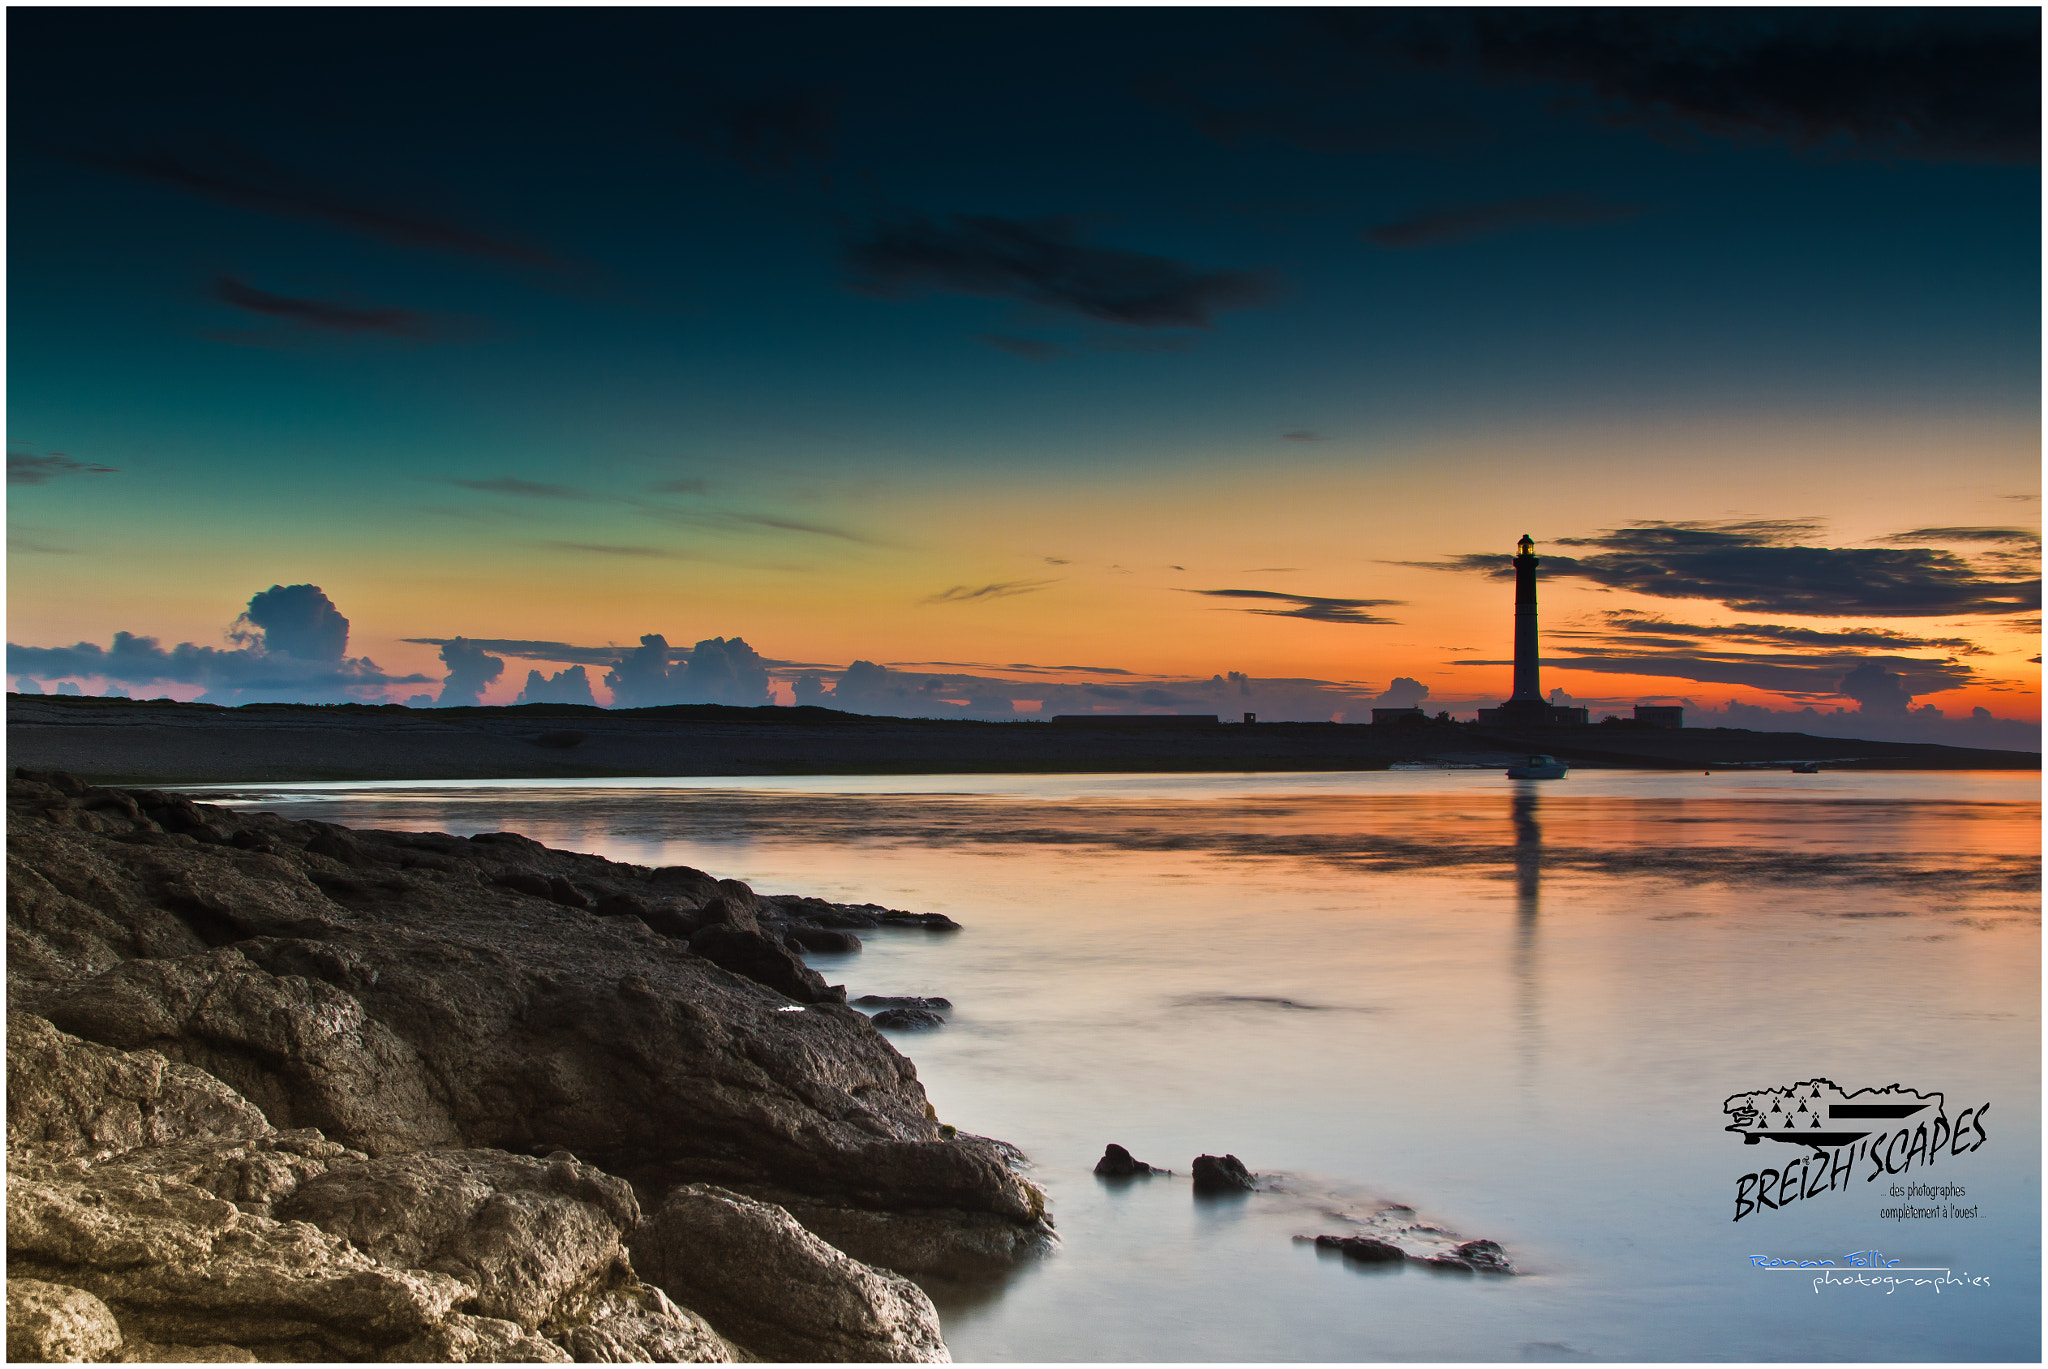 Photograph Anse and ile de Sein island lighthouse by Breizh'scapes Photographes on 500px